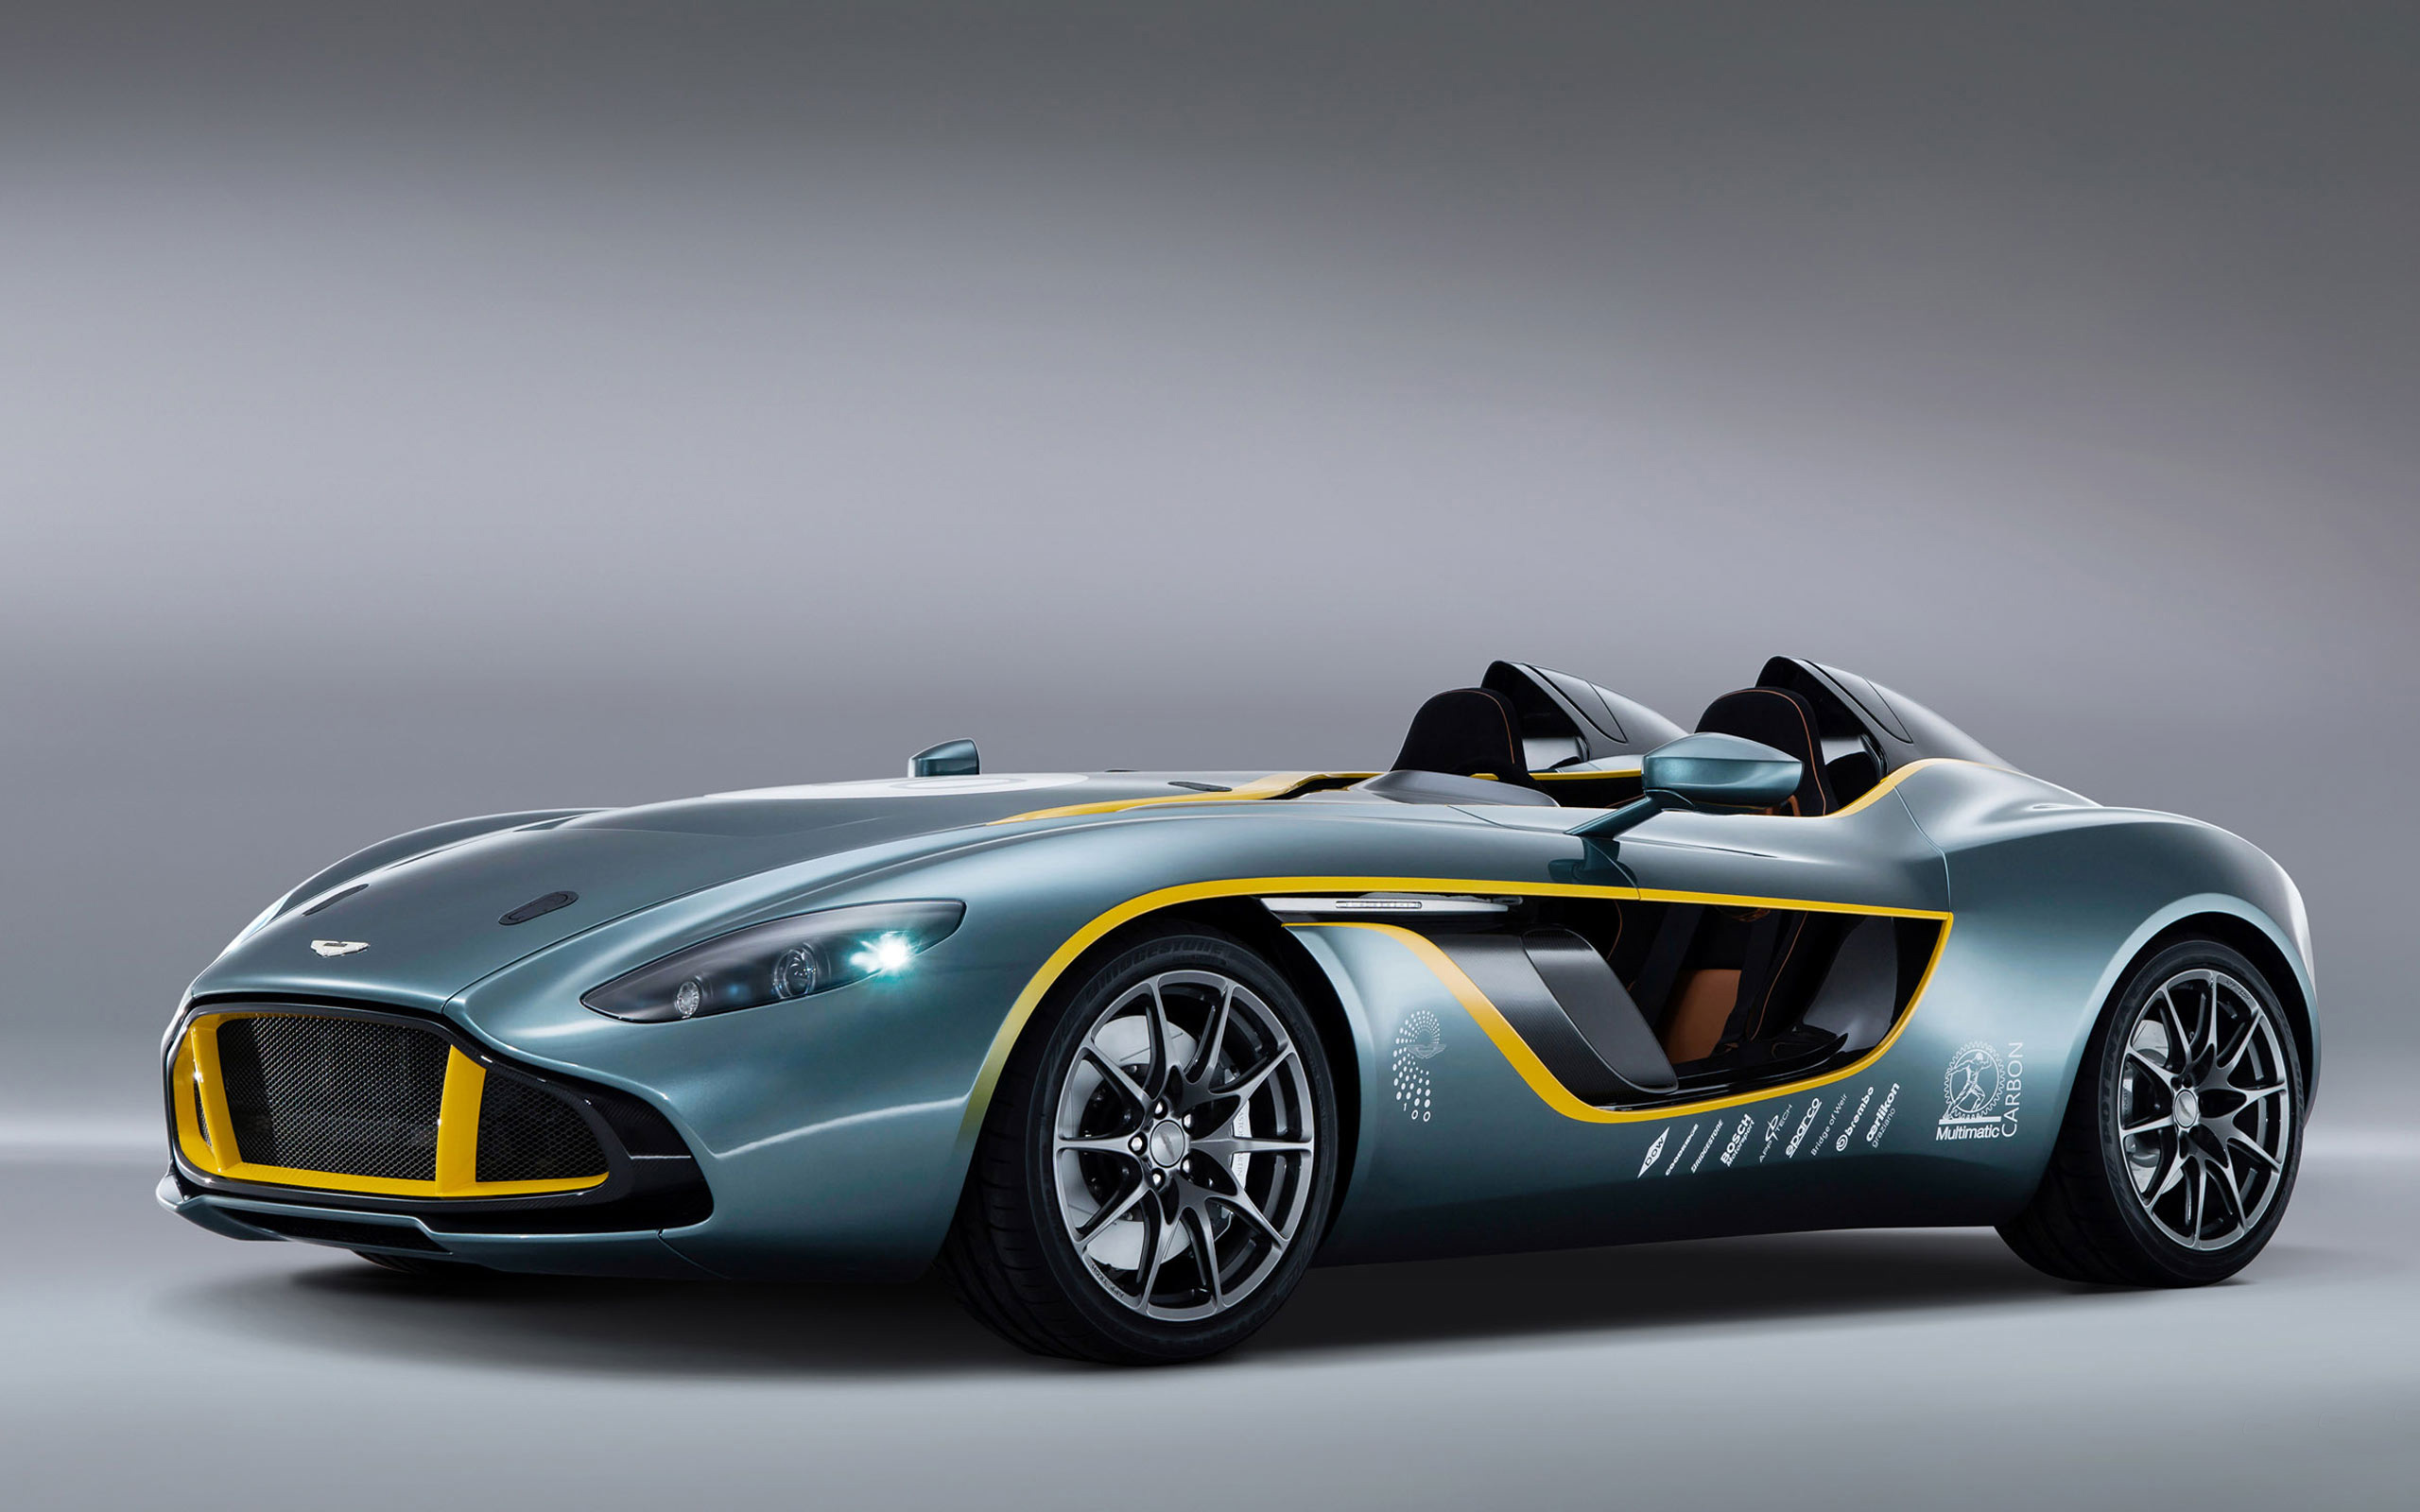 6745 views 2013 Aston Martin CC100 Speedster Concept